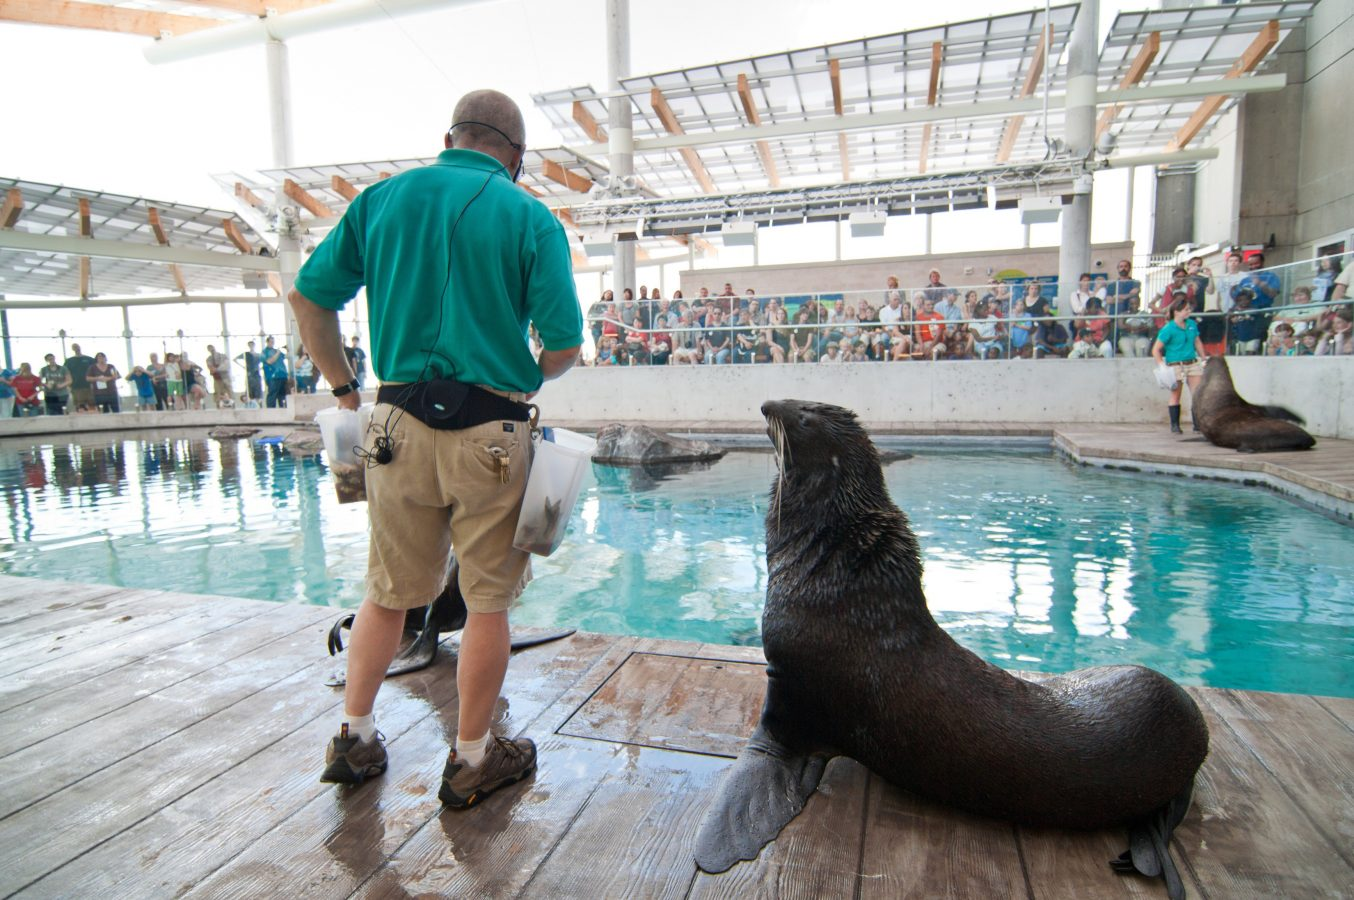 Training show of sea lions